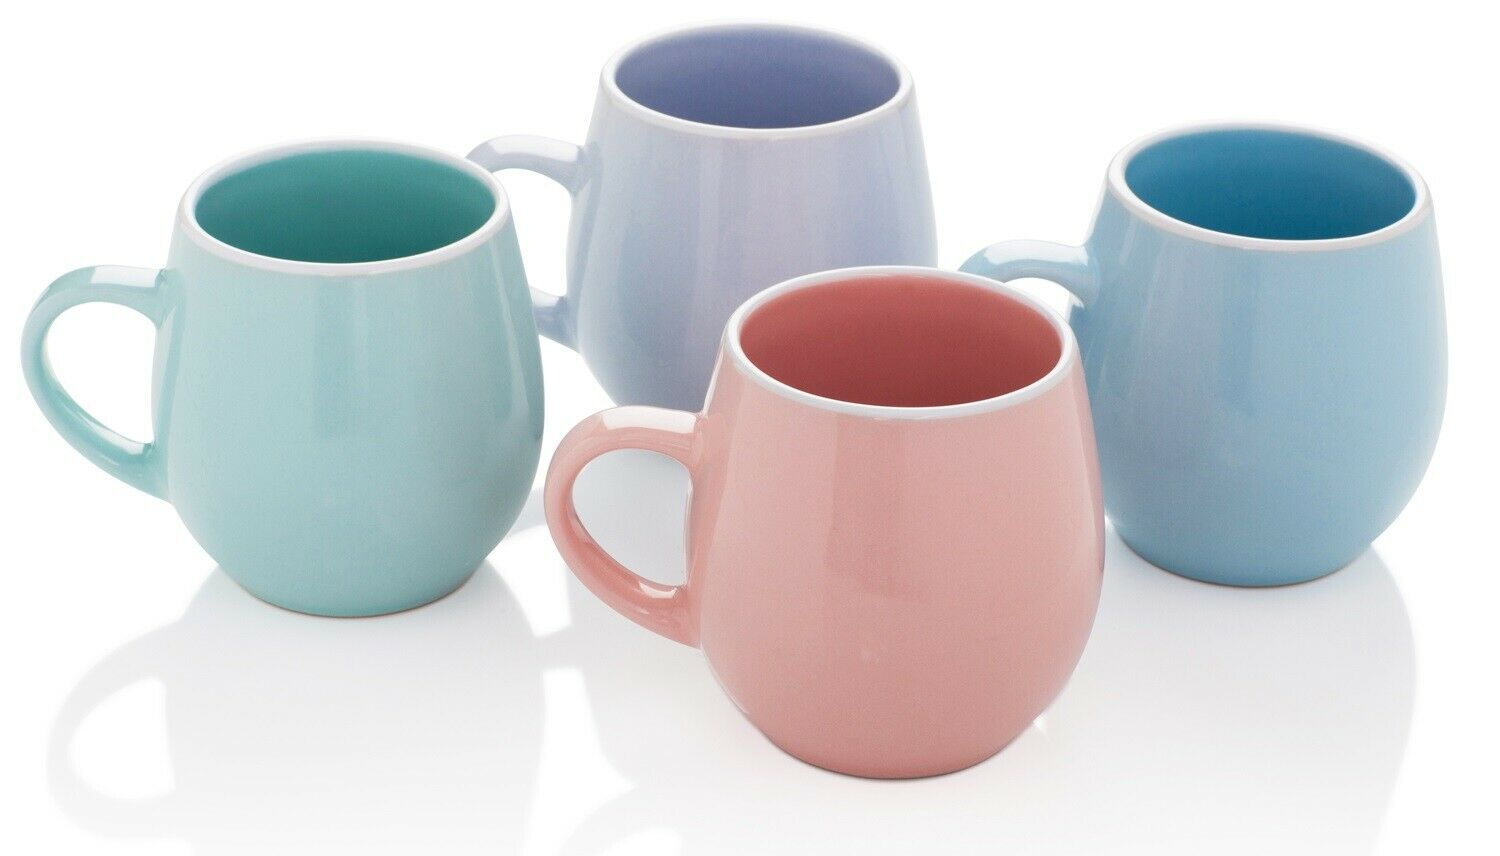 Stunning Set of 4 Bright Coloured Fruiti Porcelain EXTRA LARGE Coffee Soup Mugs